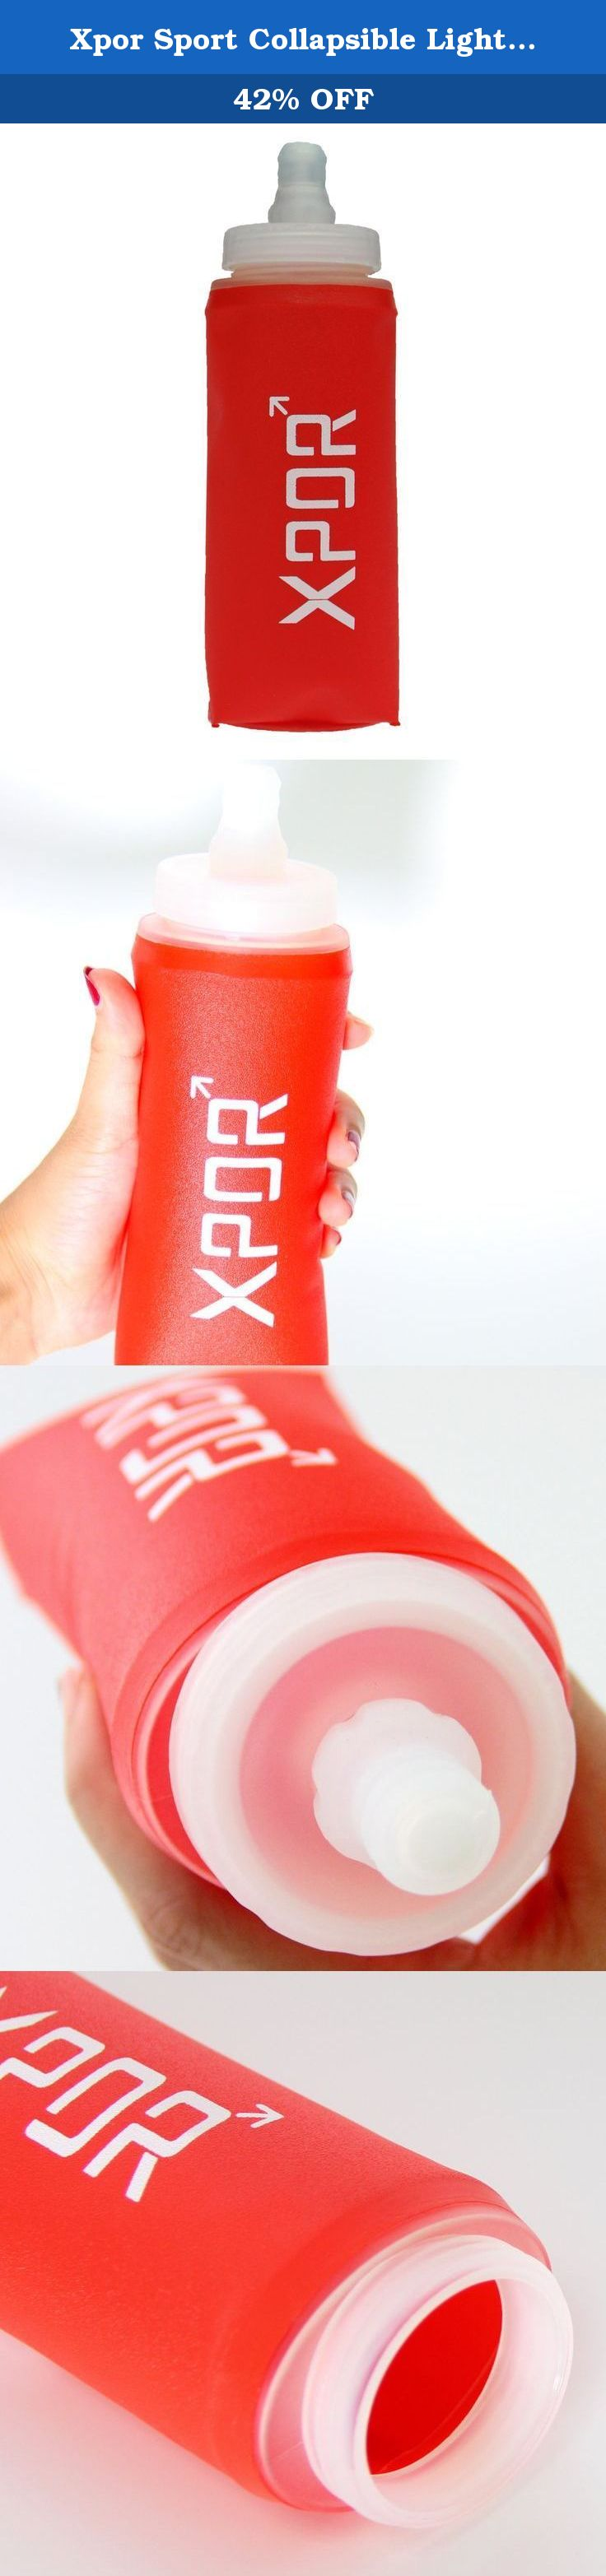 Xpor Sport Collapsible Lightweight Compact Bpa Free Soft Running Water Bottle Soft Hiking Flask Hydration Bot Hydration Bottle Energy Gels Running Water Bottle